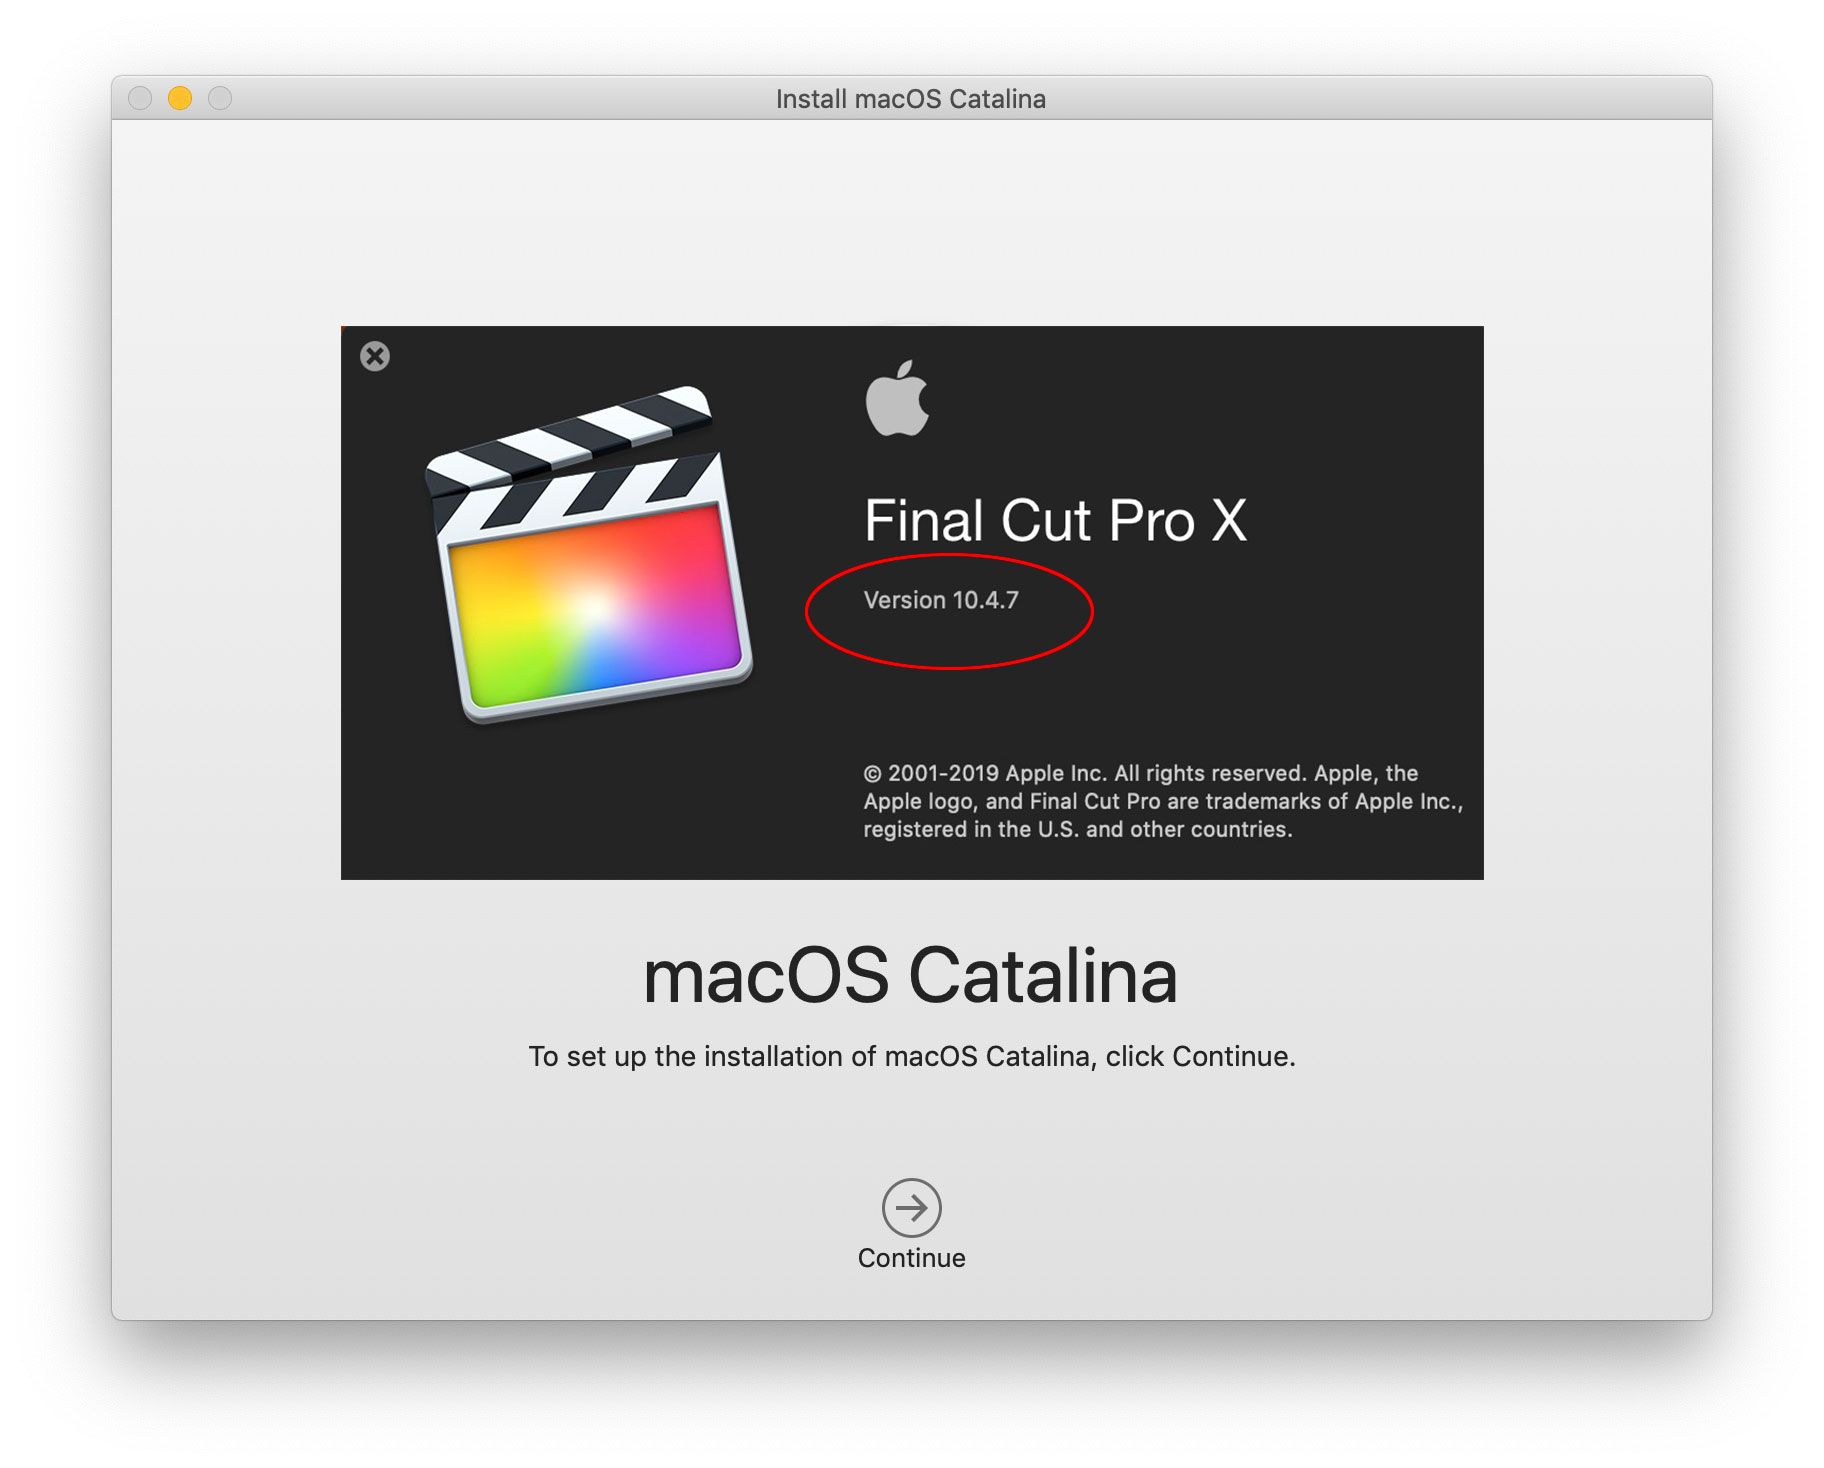 Final Cut Pro X updated to 10 4 7, MacOS updated to 10 15